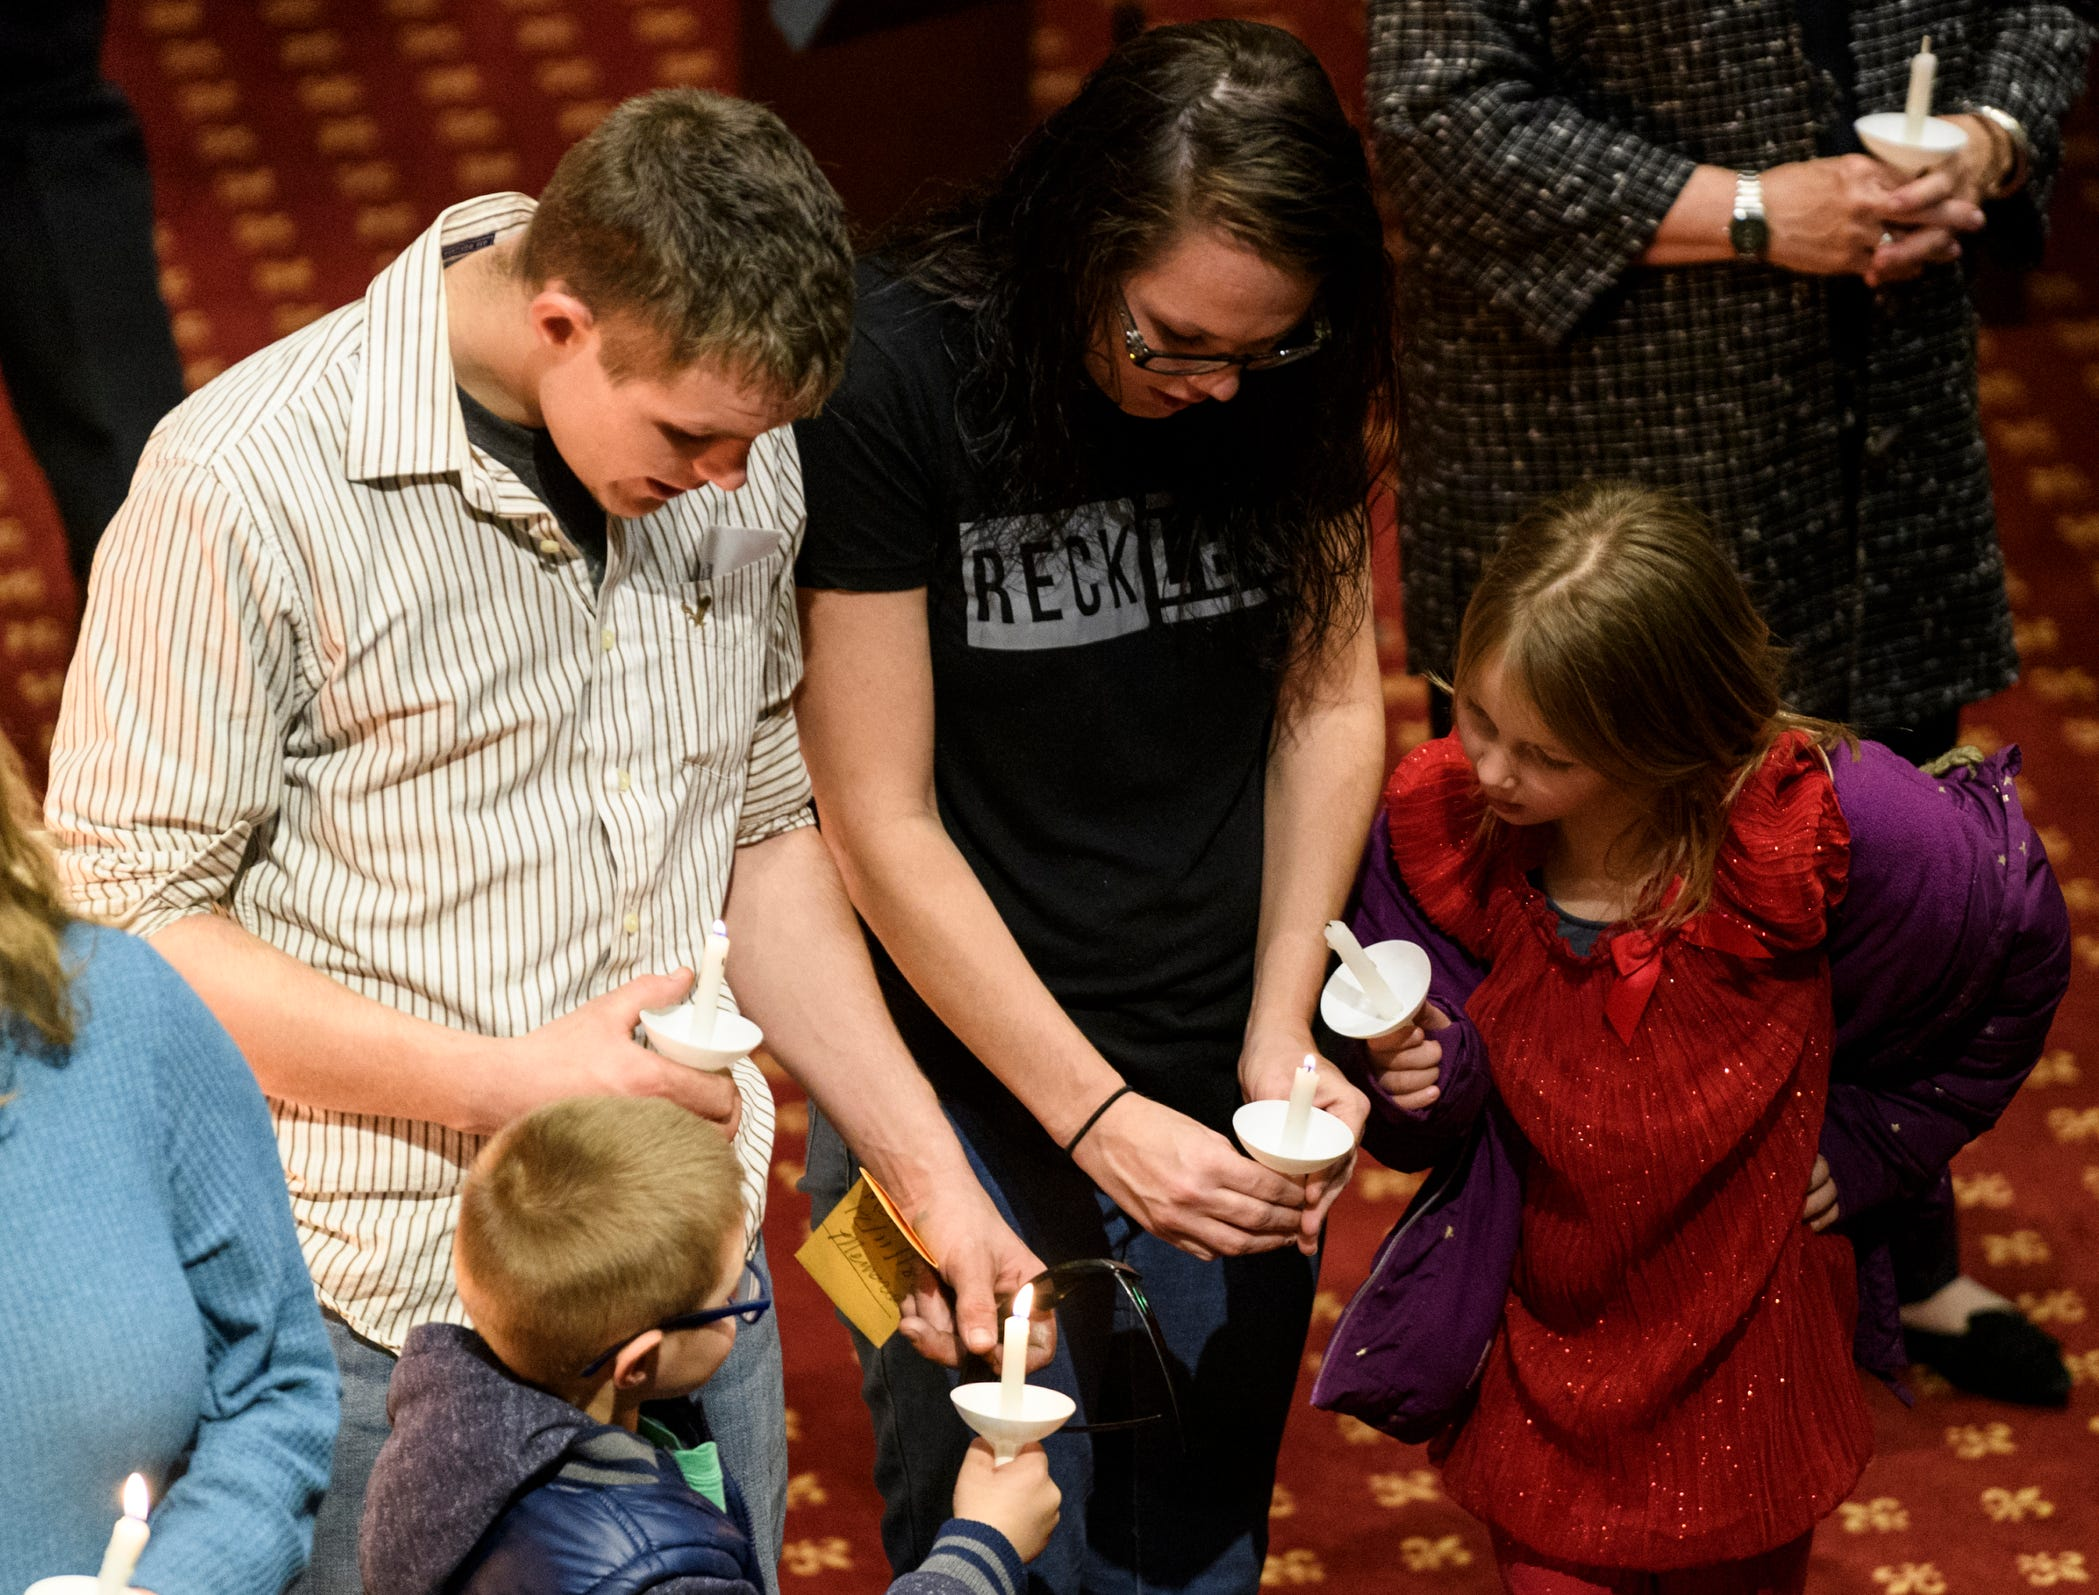 Zachary Herron, center left, and Leann Herron, center right, help their children Kaleb, 5, left, and Karen, 7, right, light candles as they stand in a large circle around the sanctuary of Trinity United Methodist Church during the 18th annual Homeless Memorial service organized by Aurora, a local non-profit serving area's homeless population, in downtown Evansville, Ind., Tuesday, Dec. 11, 2018.